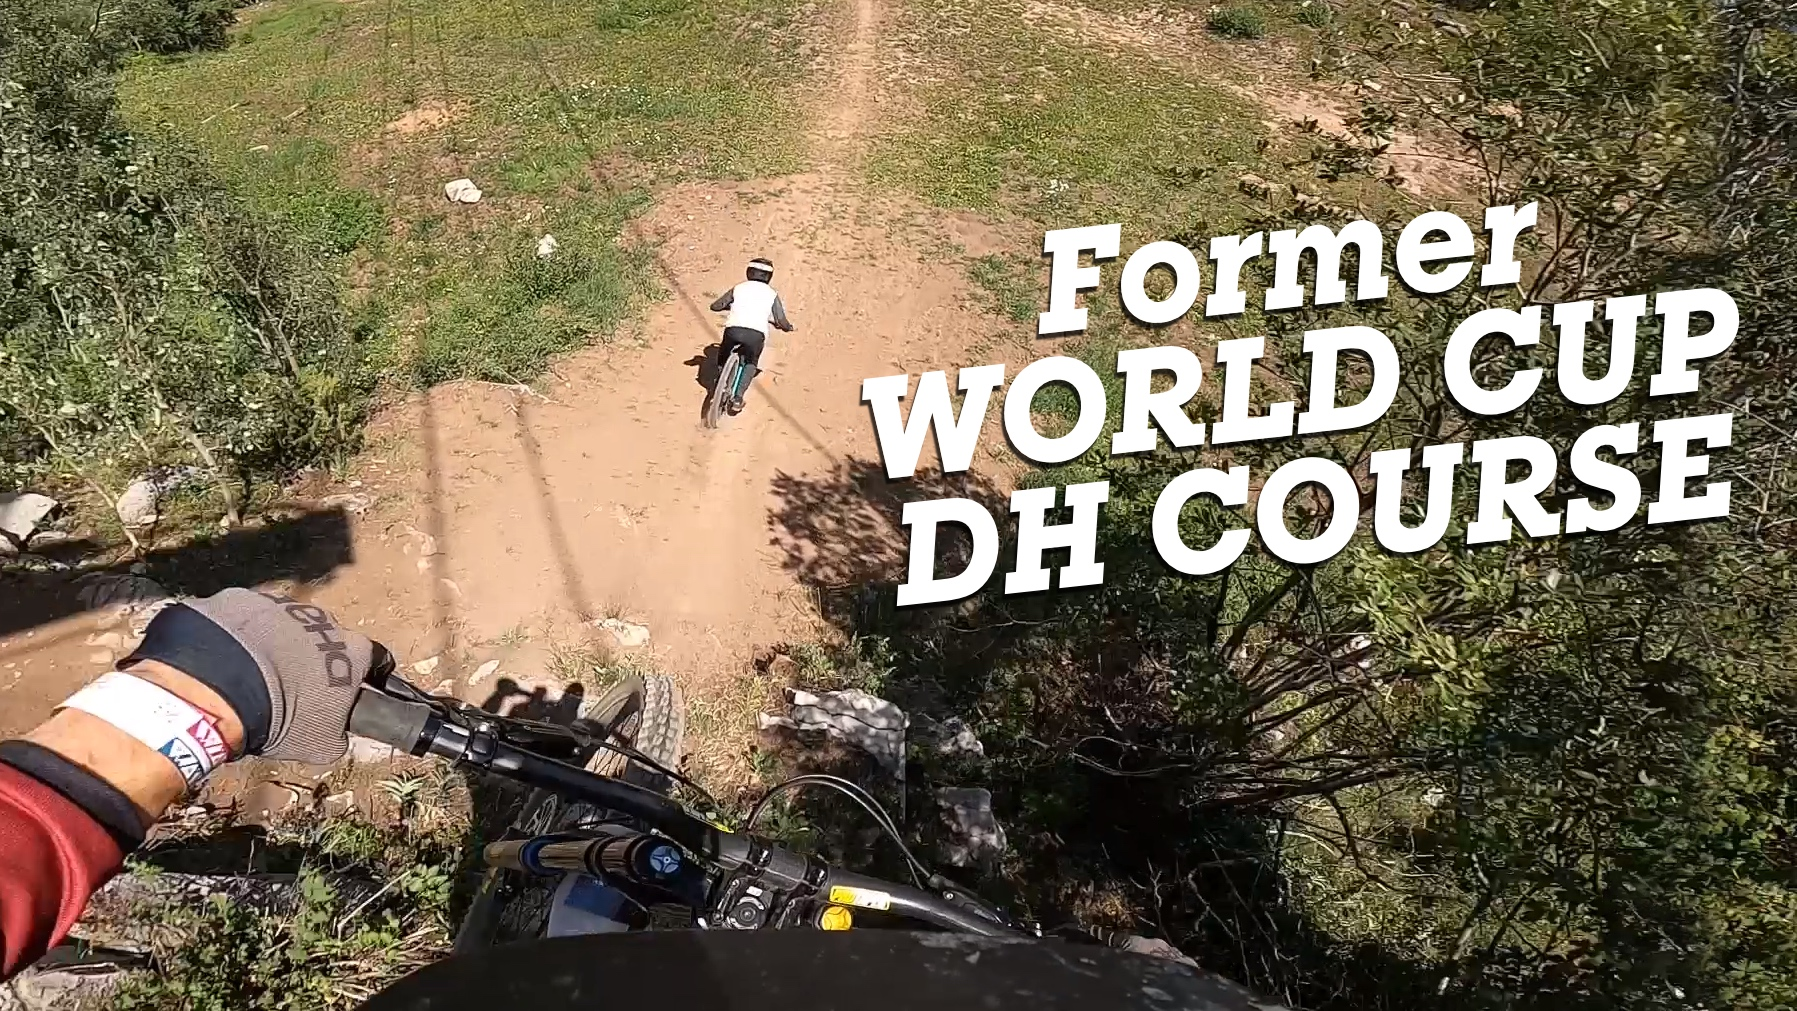 Old World Cup DH Track Still AWESOME! Durango / Purgatory POV